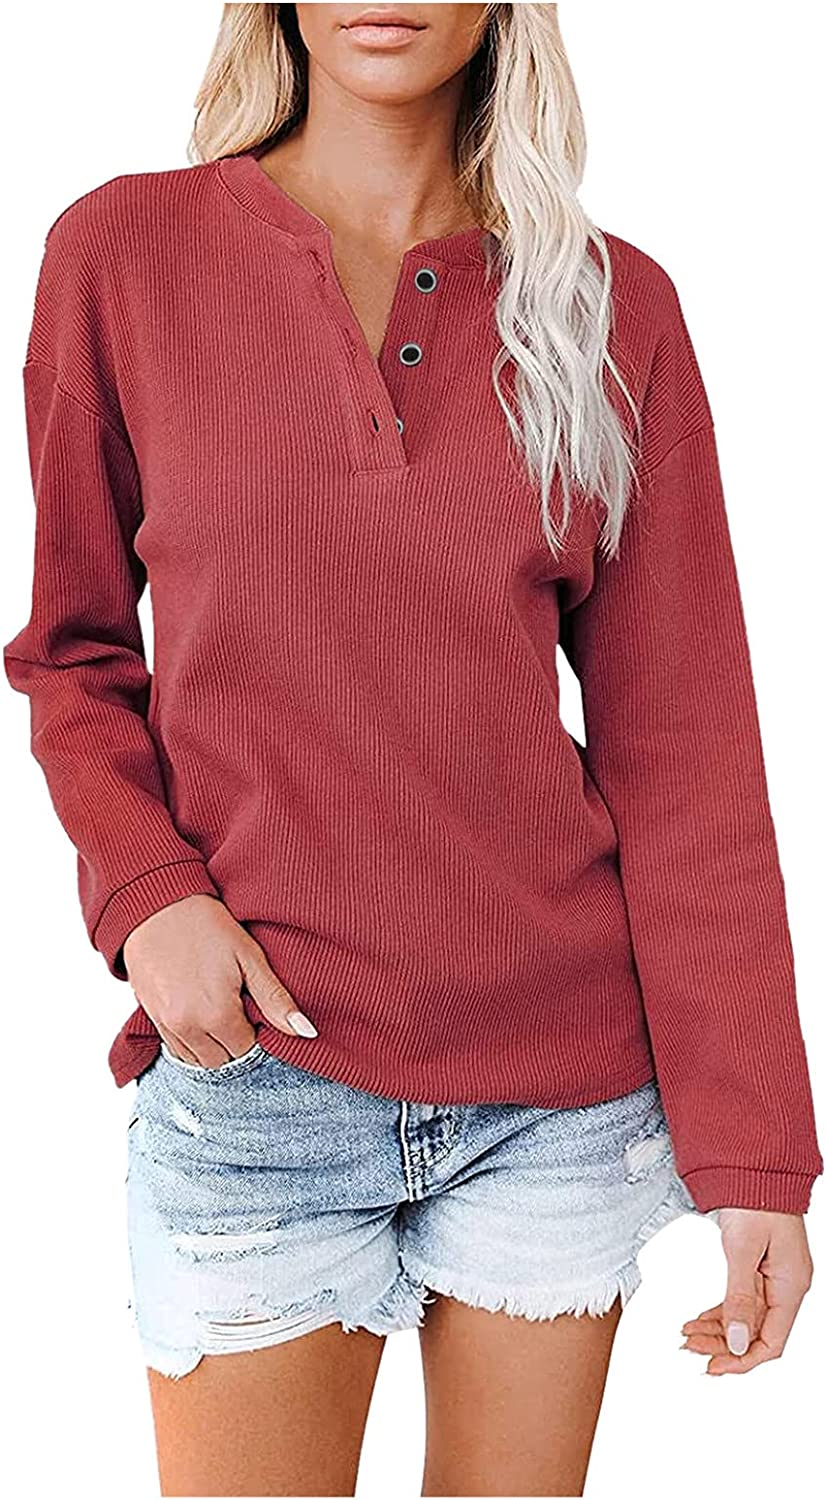 BHSJ Women's Fashion Soild Color Tops Square Collar Long Sleeve Casual Pullover Hoodie Sweater Loose V-Neck T-Shirt